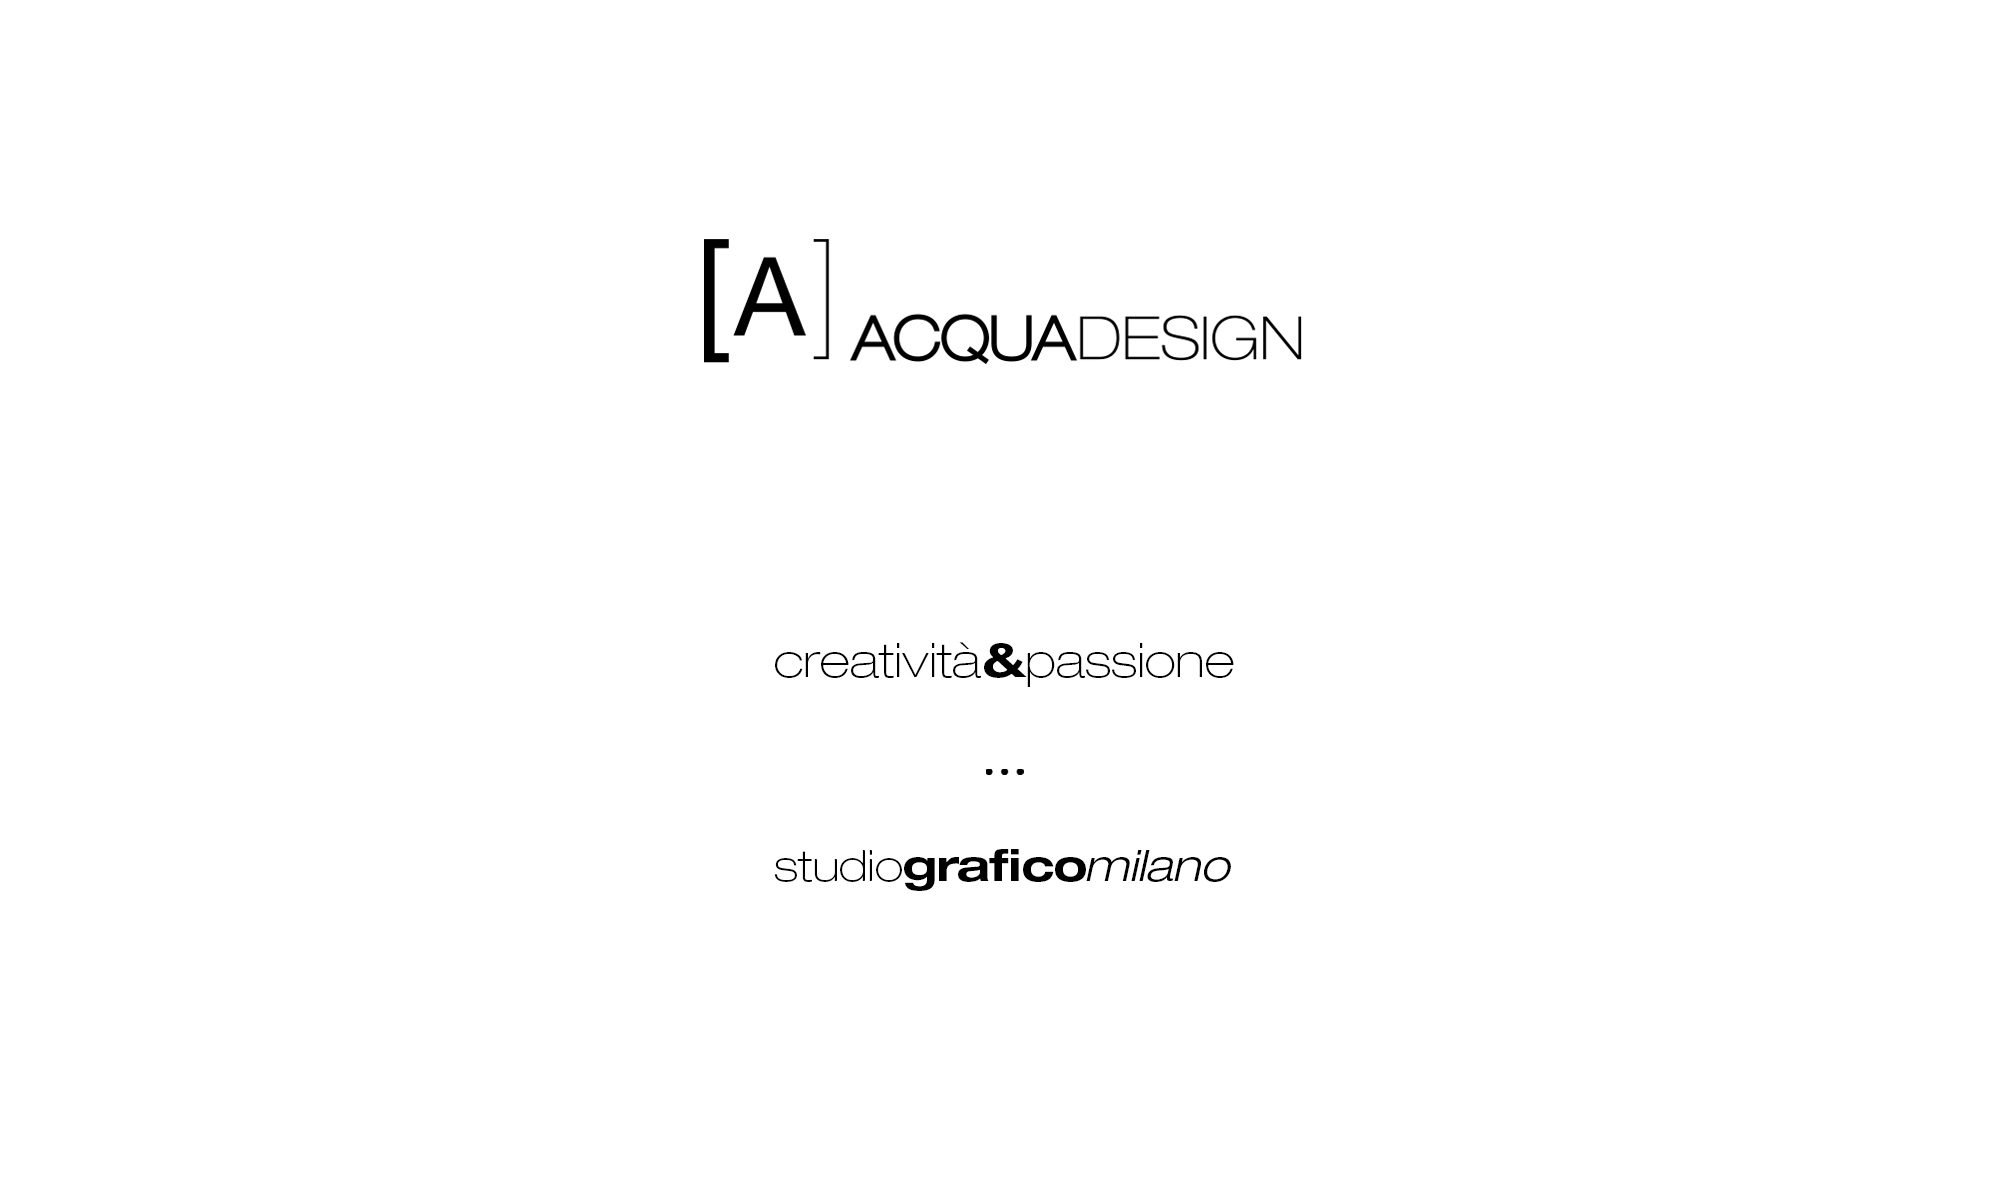 Acquadesign.net